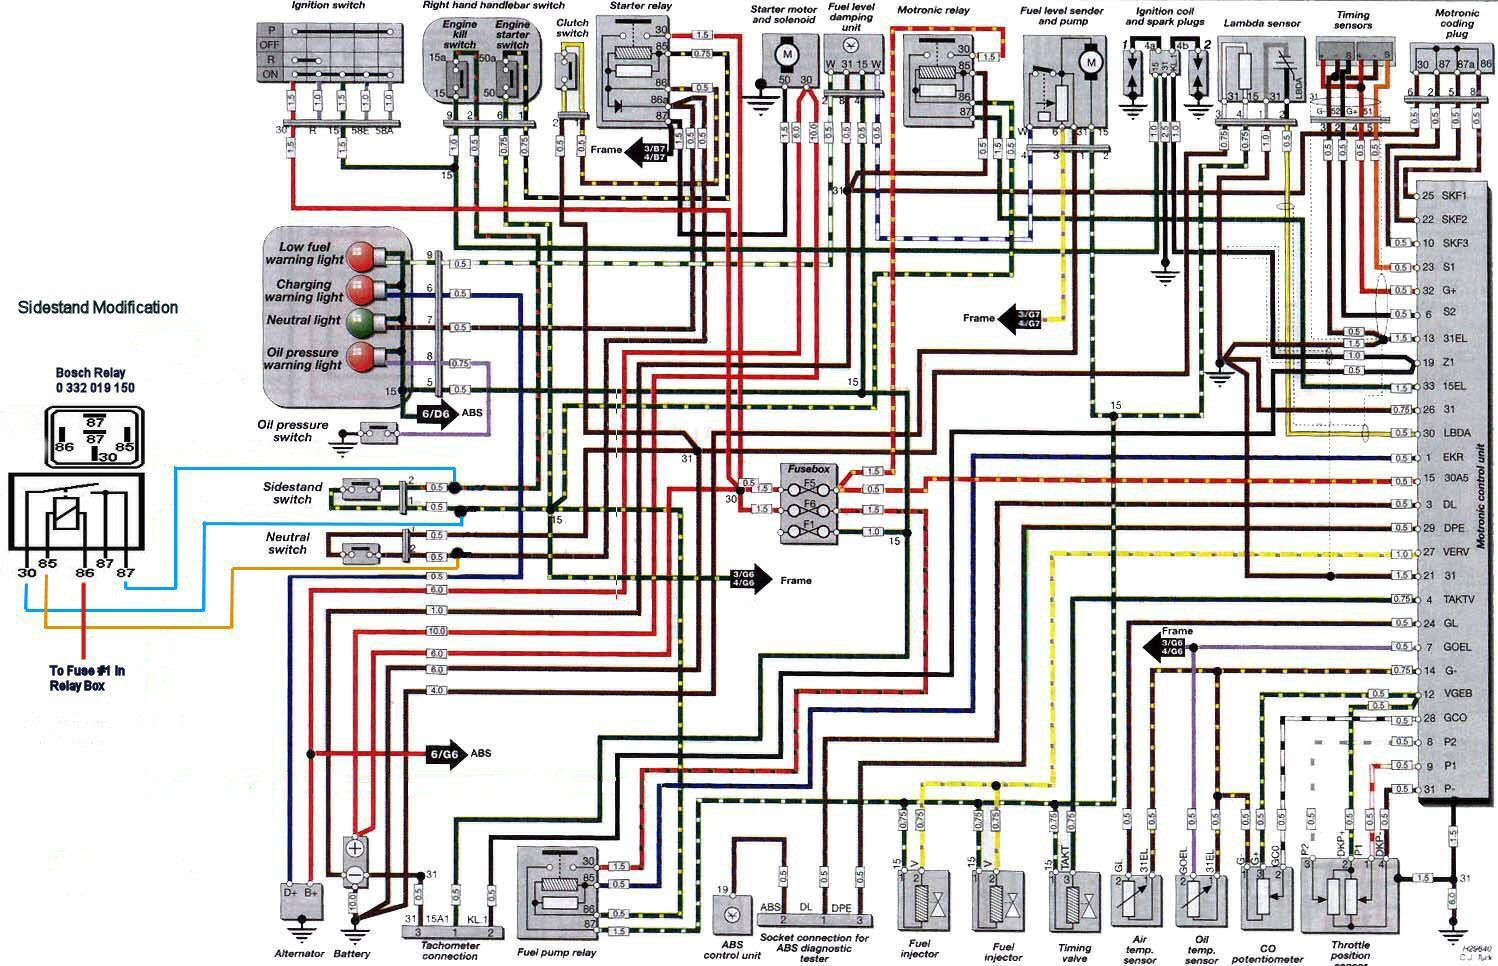 Bmw r1150r electrical wiring diagram #1 | Electrical wiring diagram, Bmw  s1000rr, Bmw | Bmw Electrical Wiring Diagrams |  | Pinterest